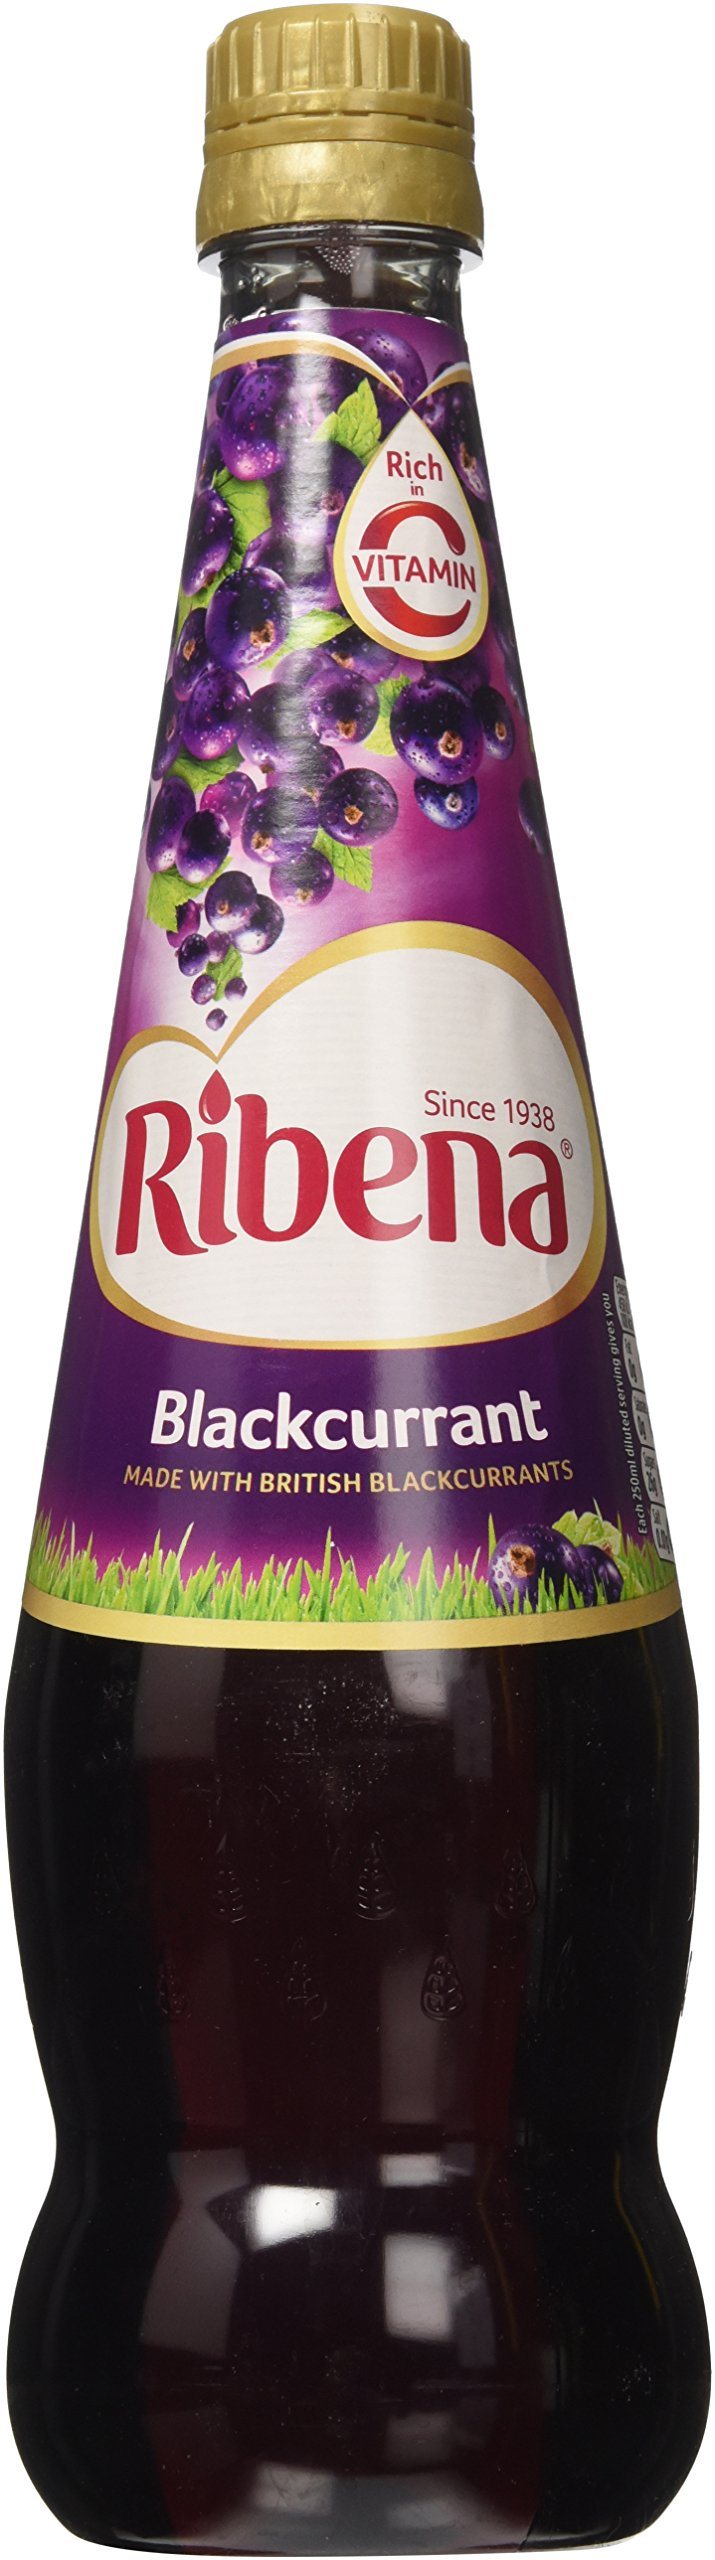 Ribena Blackcurrant 850ml - 3 Pack